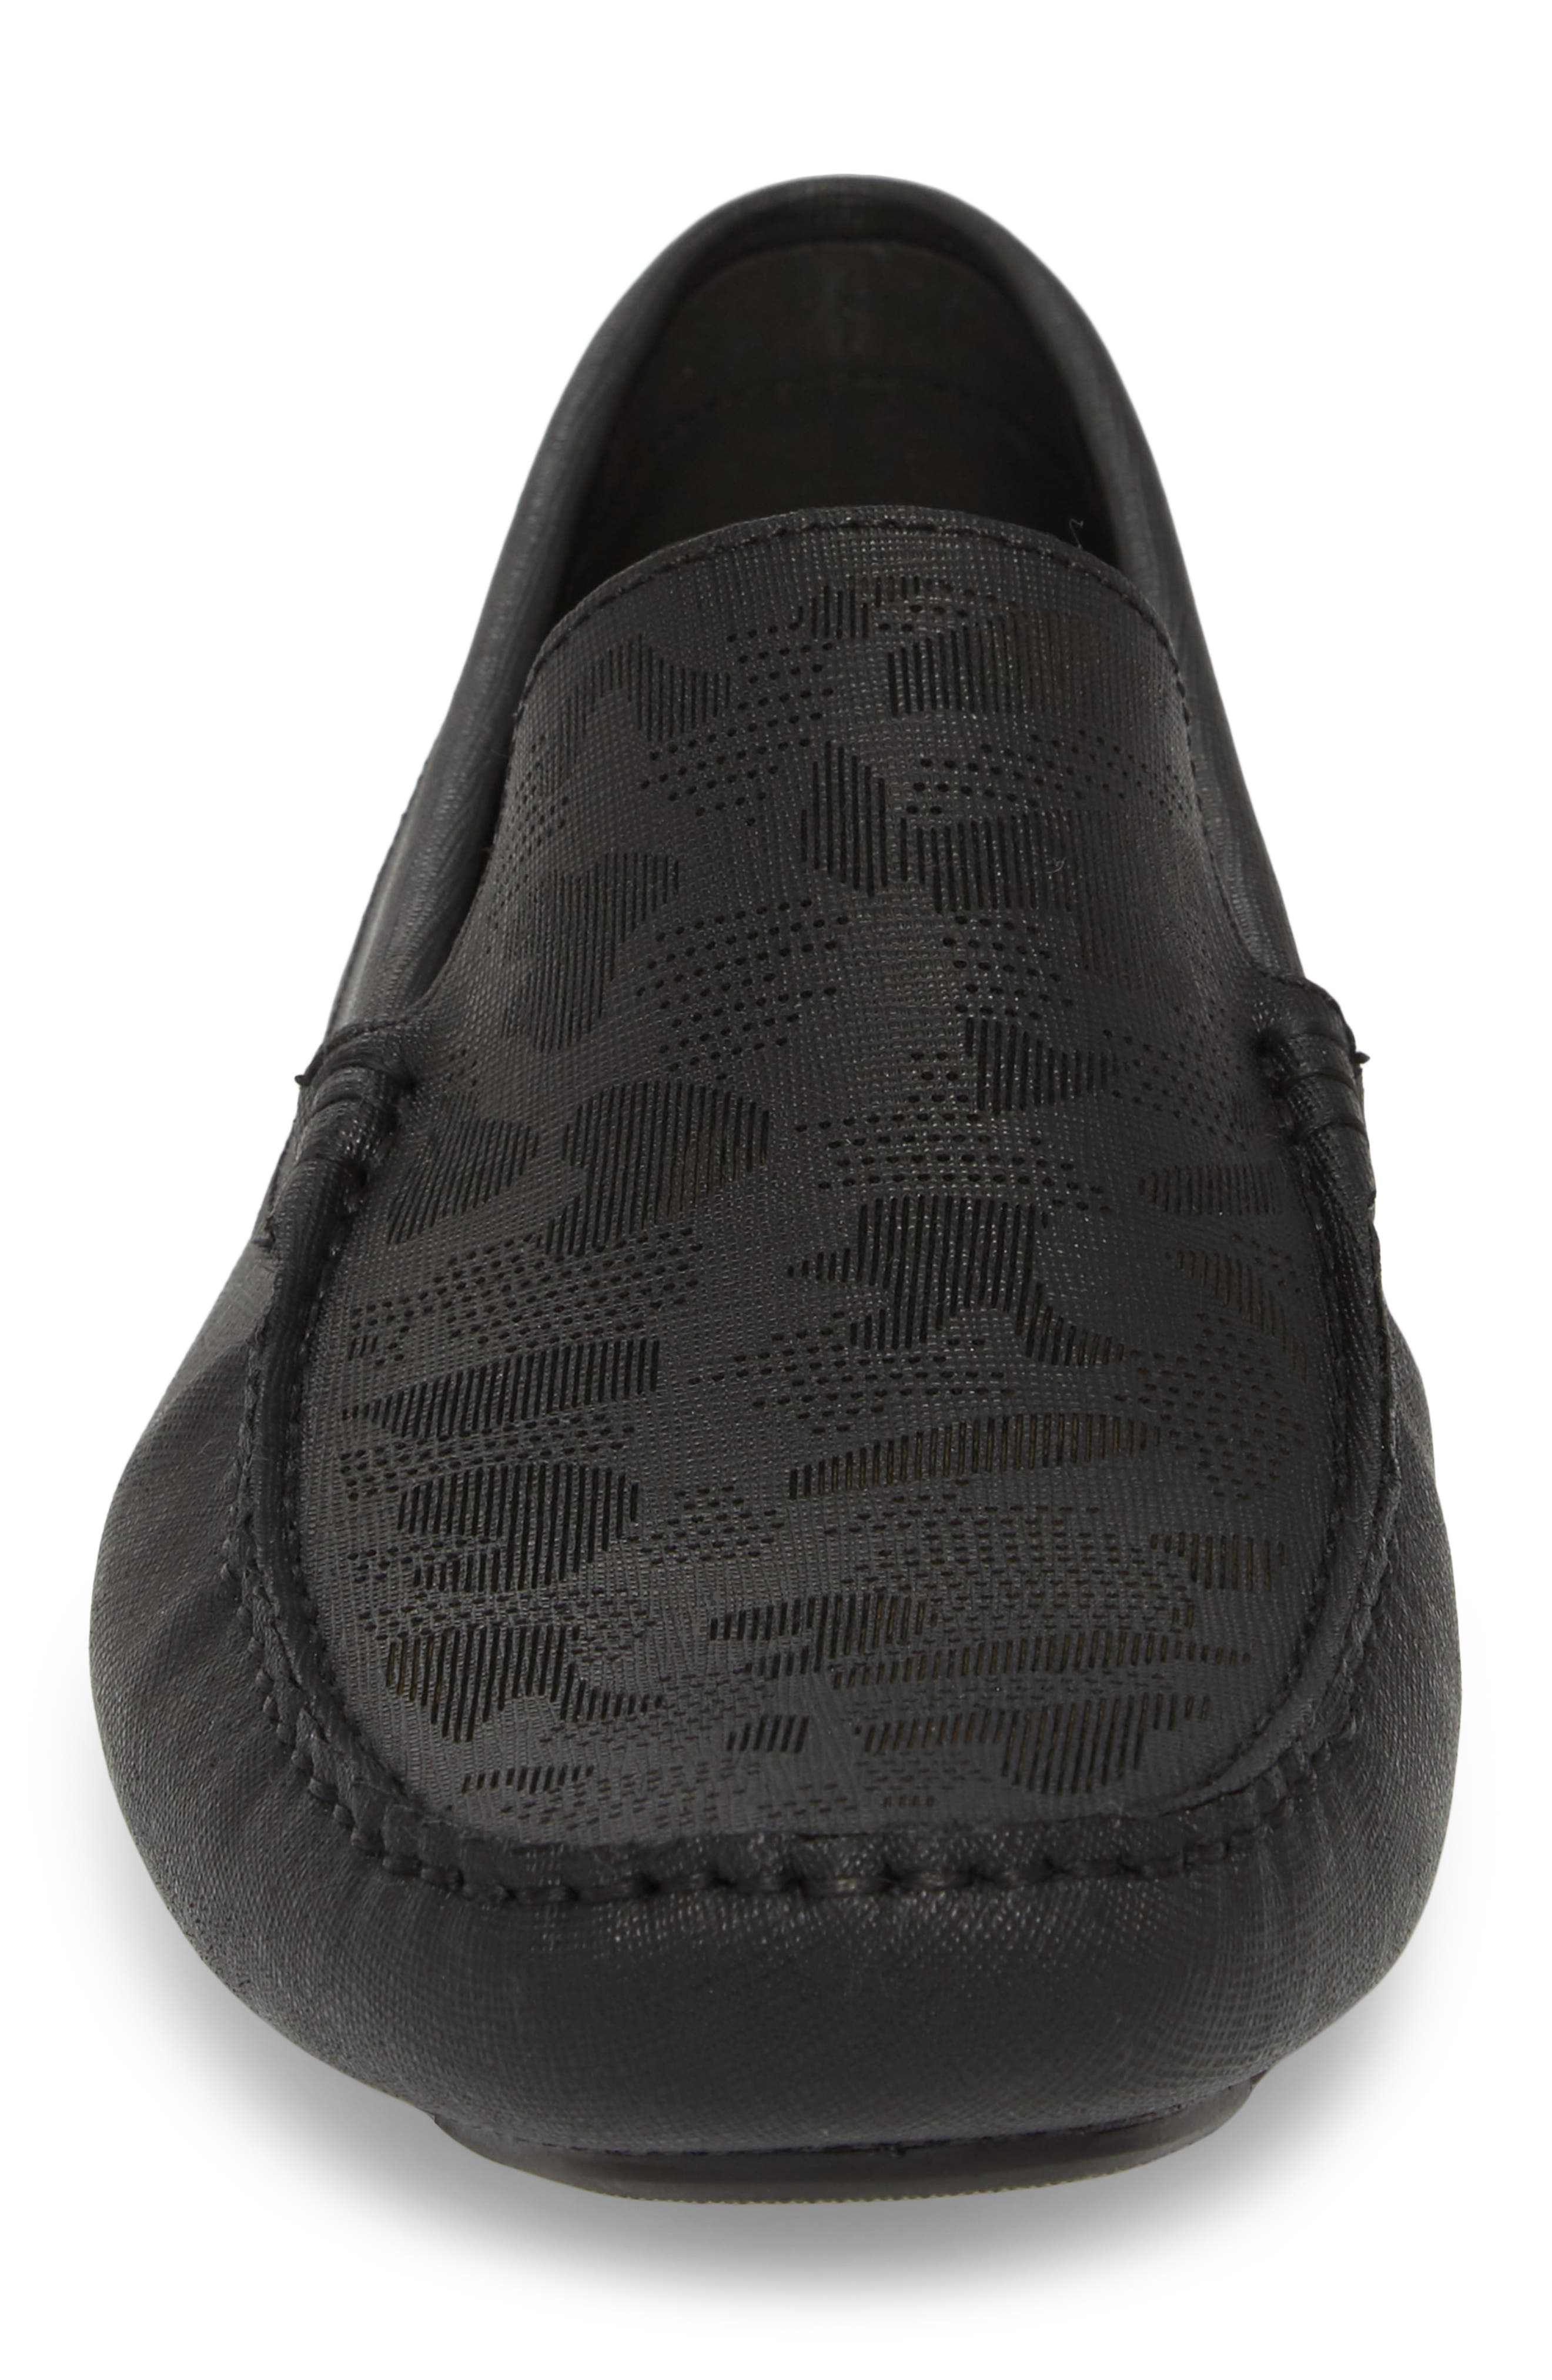 KENNETH COLE NEW YORK,                             Theme Song Driving Shoe,                             Alternate thumbnail 4, color,                             001